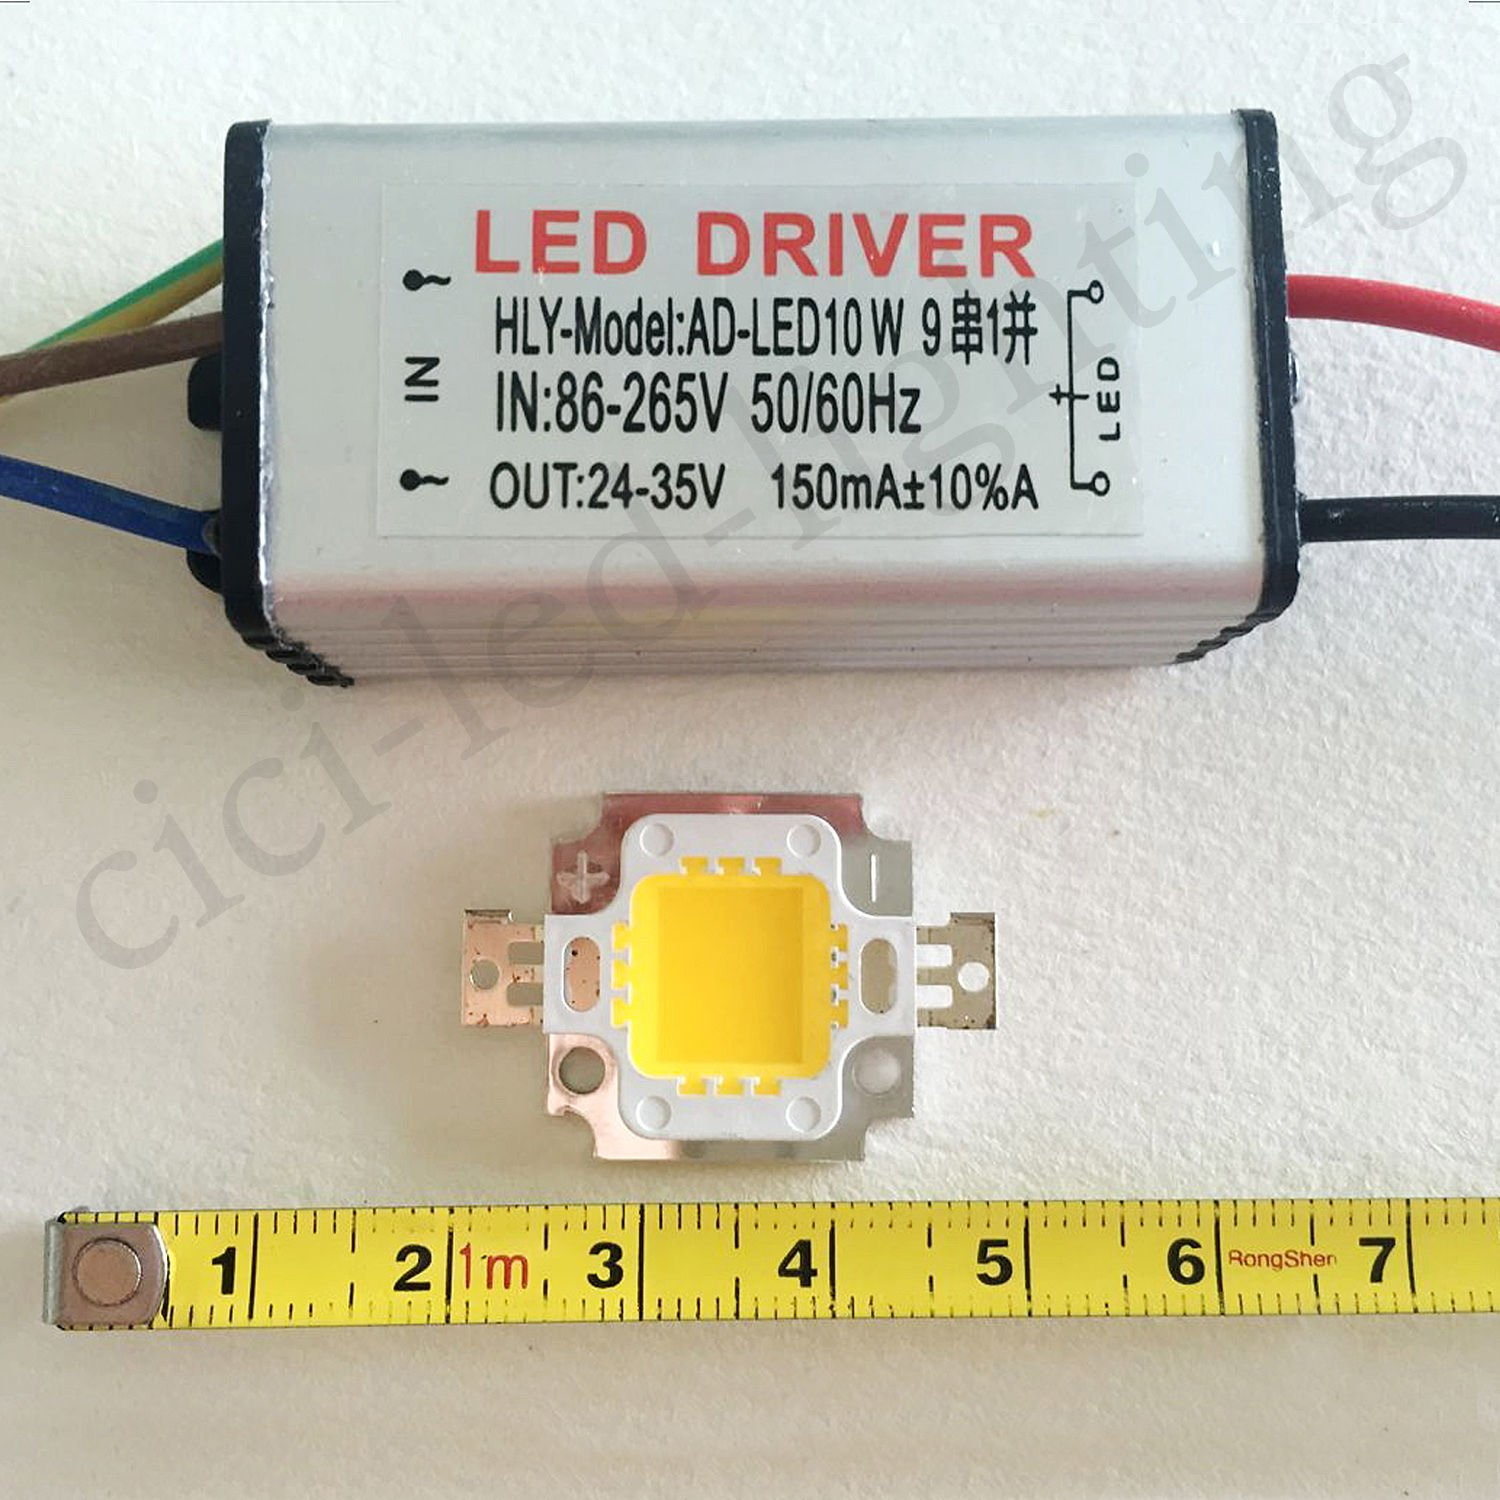 Buy Generic Cool White 10w Chip Only 20w 30w 50w 100w Watt Led Driver Circuit View 3 Waterproof High Power Supply Smd Bulb Online At Low Prices In India